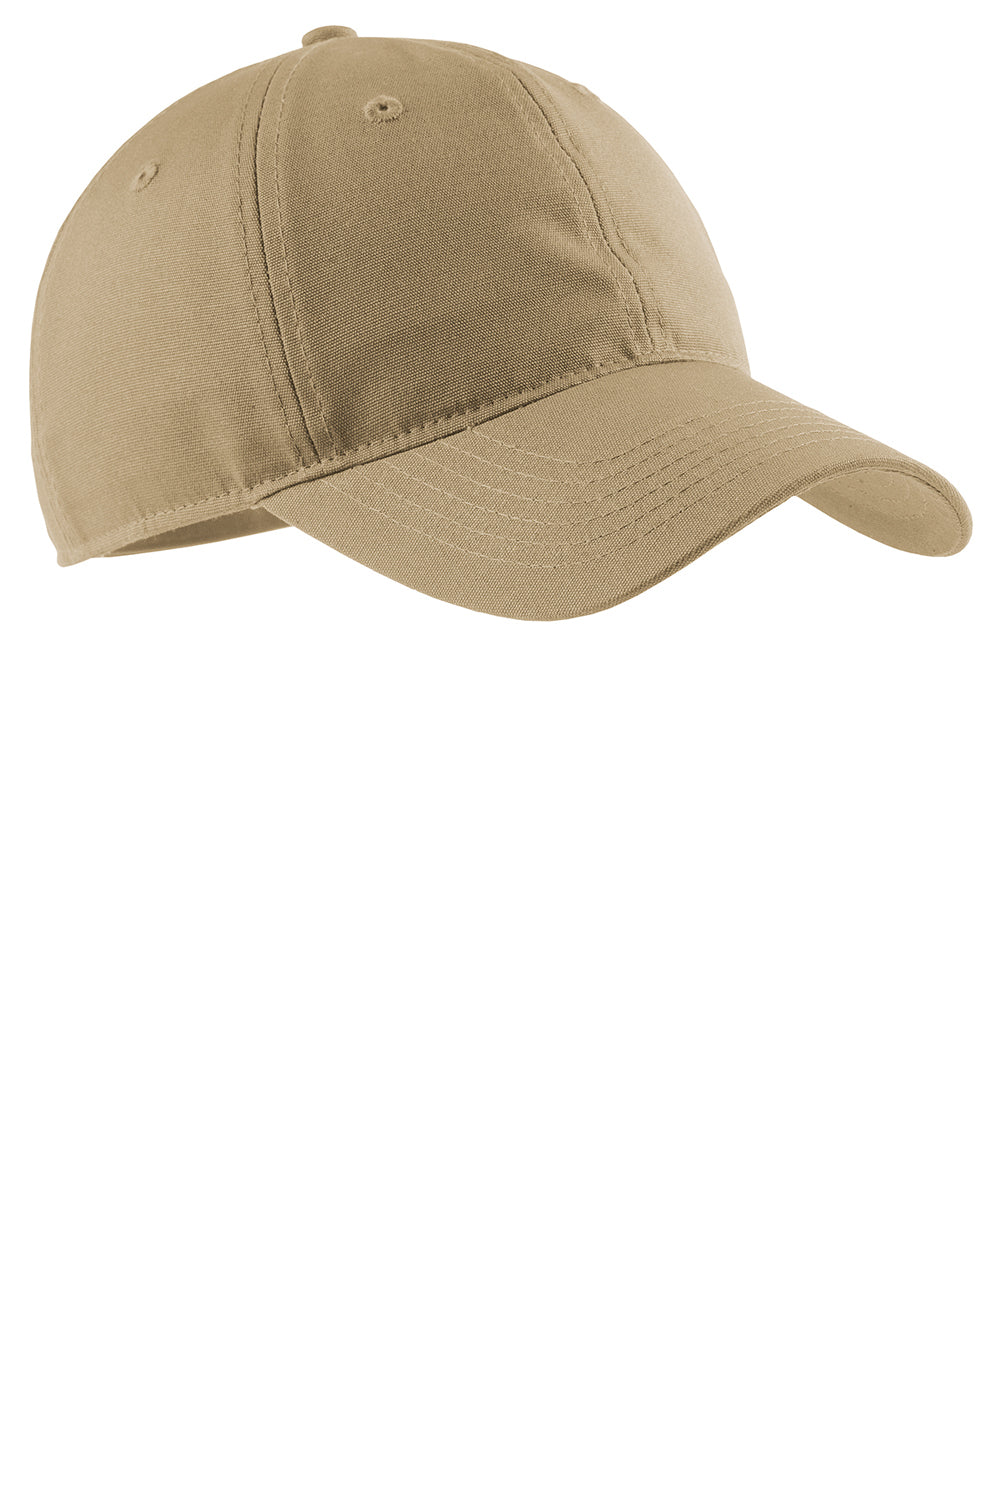 Port Authority CP96 Mens Adjustable Hat Khaki Brown Front